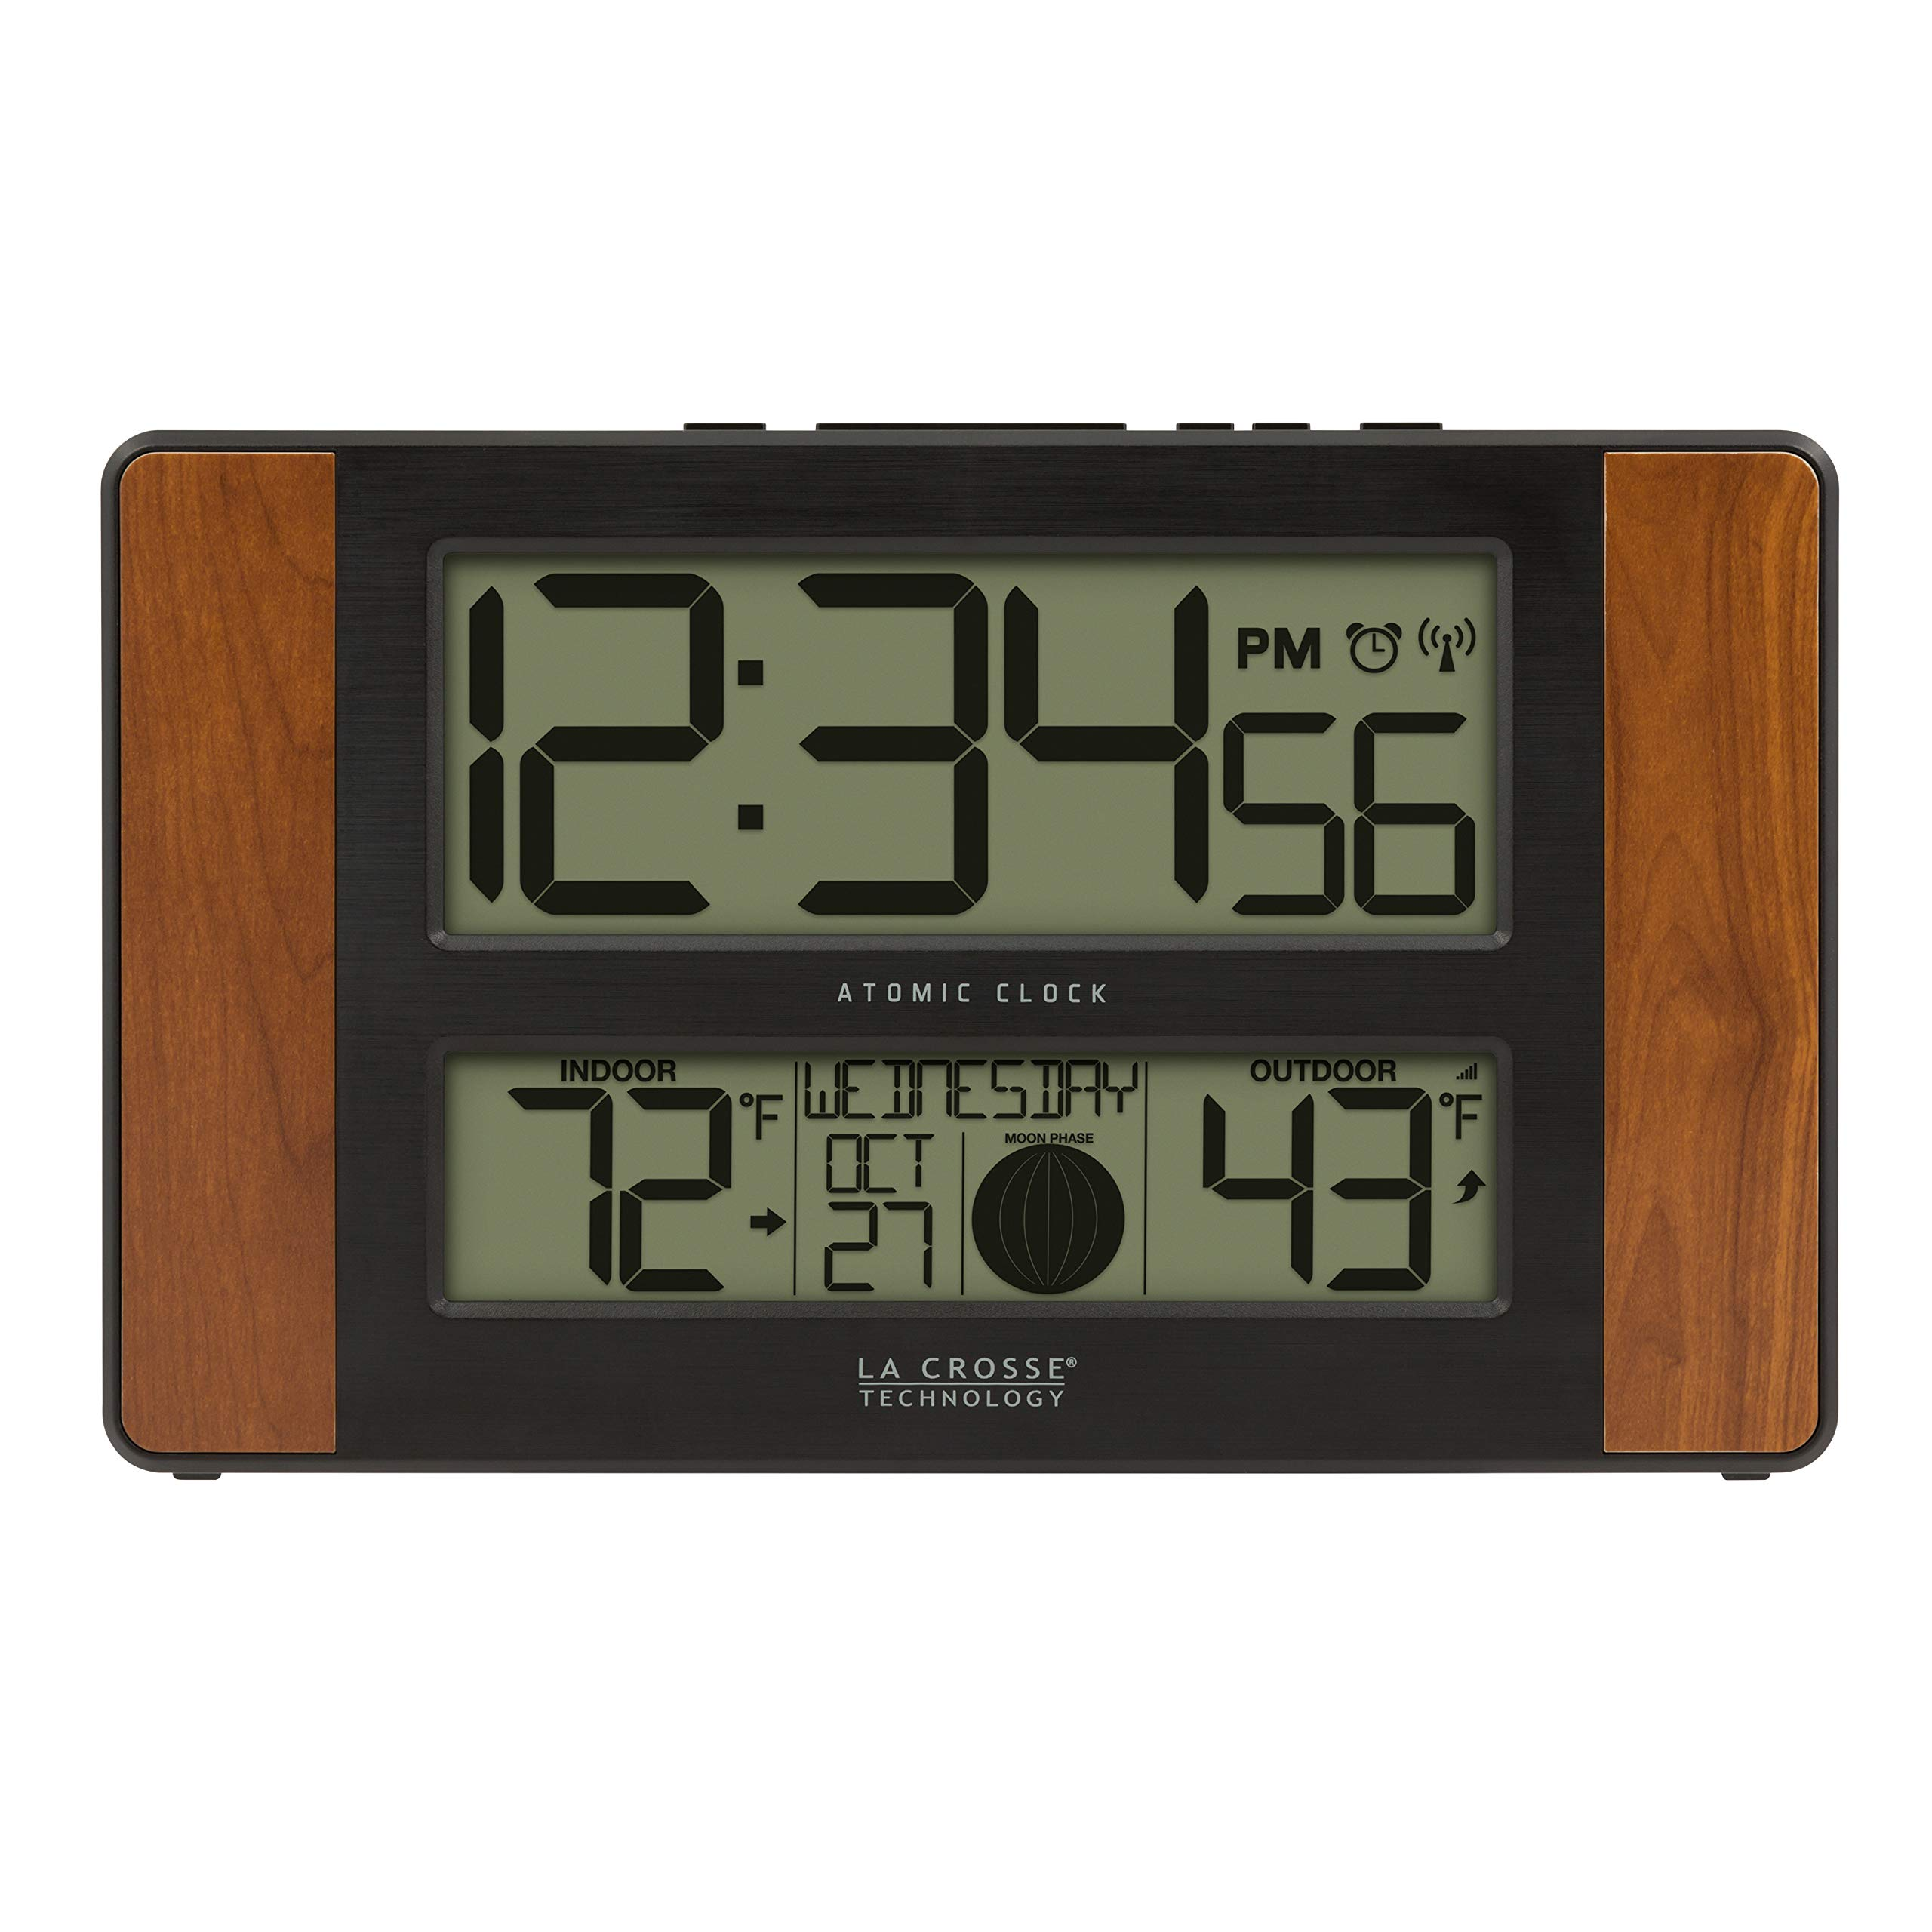 La Crosse Technology 513-1417CH-INT Atomic Digital Clock with Temperature and Moon Phase by La Crosse Technology